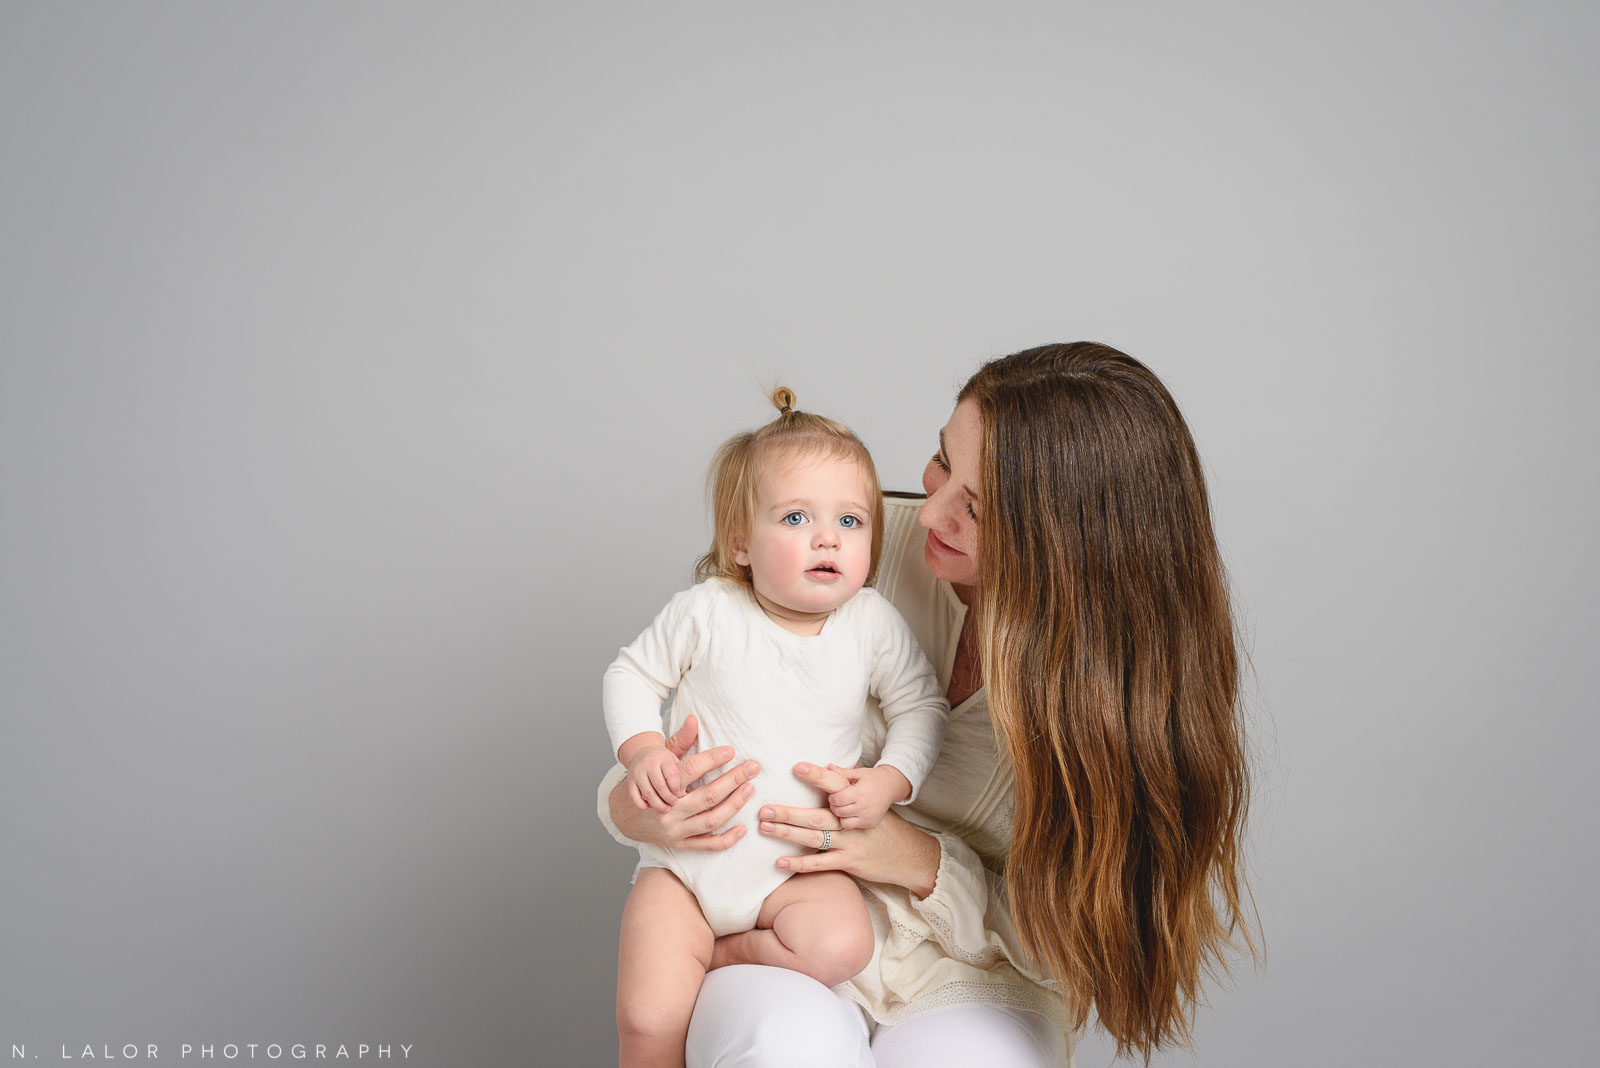 Baby girl with Mom. Studio portrait by N. Lalor Photography, Greenwich CT family photographer.